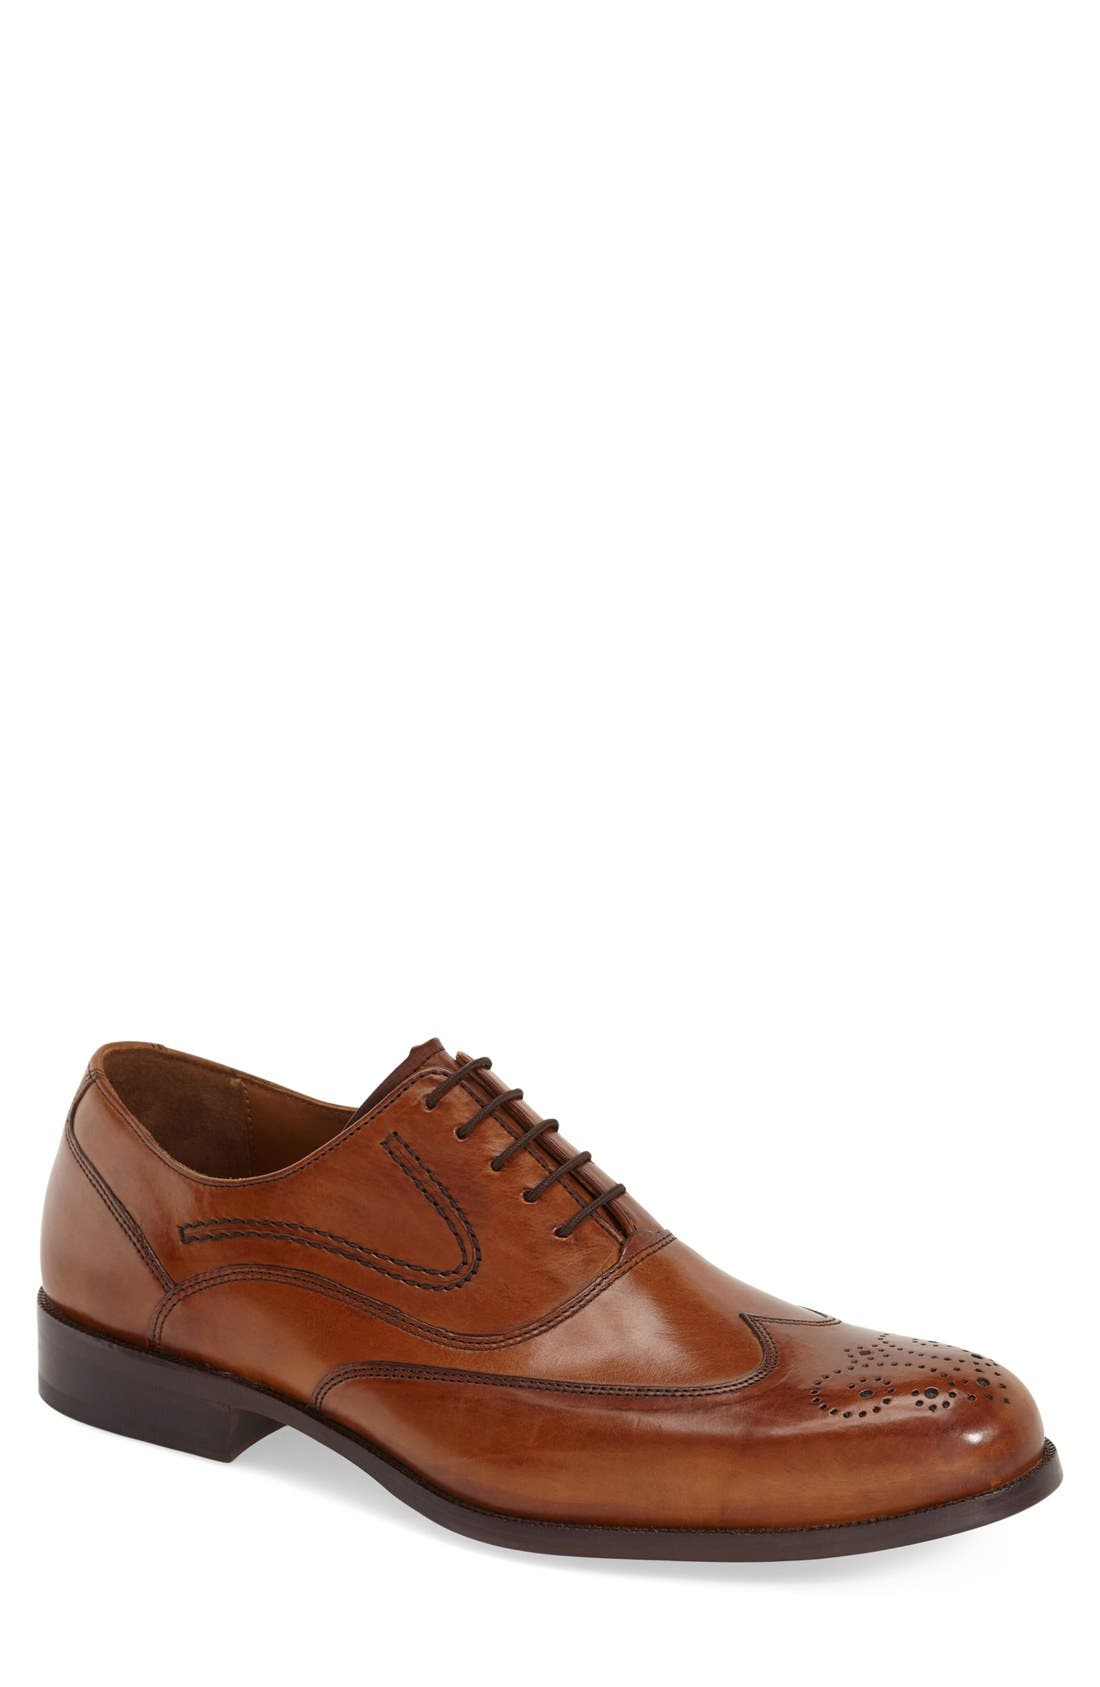 Alternate Image 1 Selected - Johnston & Murphy 'Stratton' Wingtip Oxford (Men)